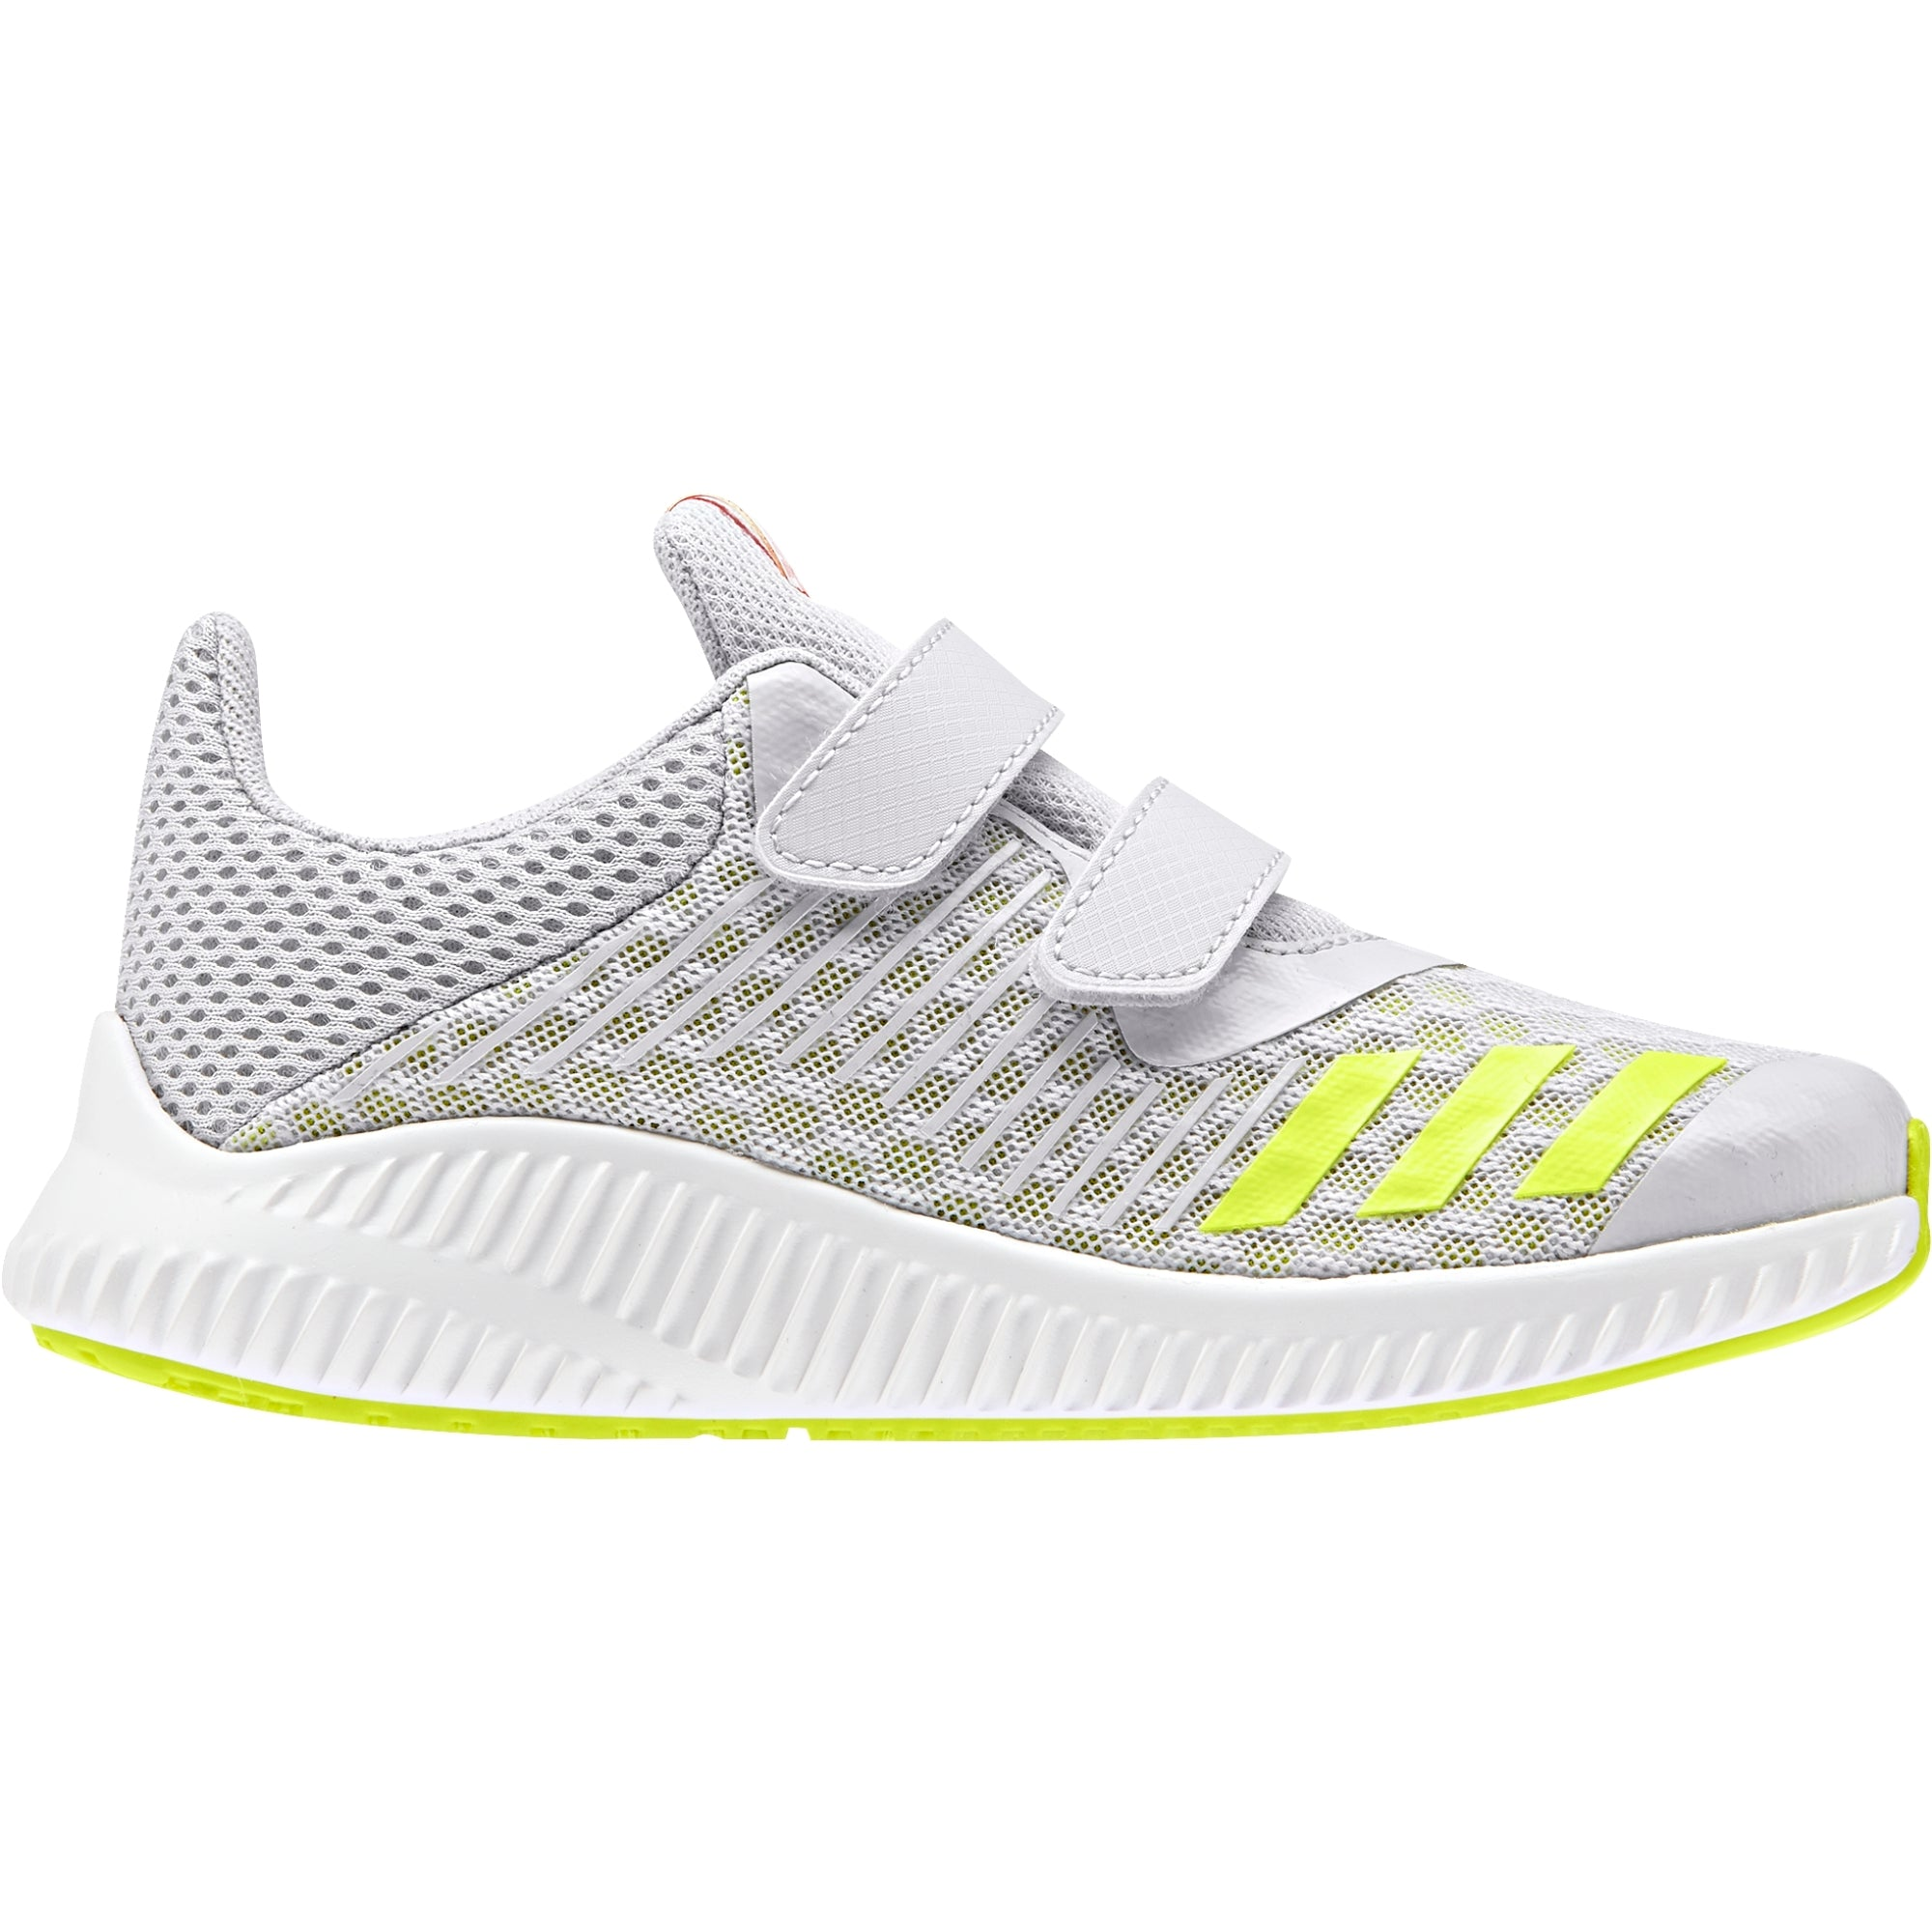 Buy adidas Boys Fortarun Cool CF Training Shoes, GreySemi Solar YellowFtwr White Online in Singapore | Royal Sporting House